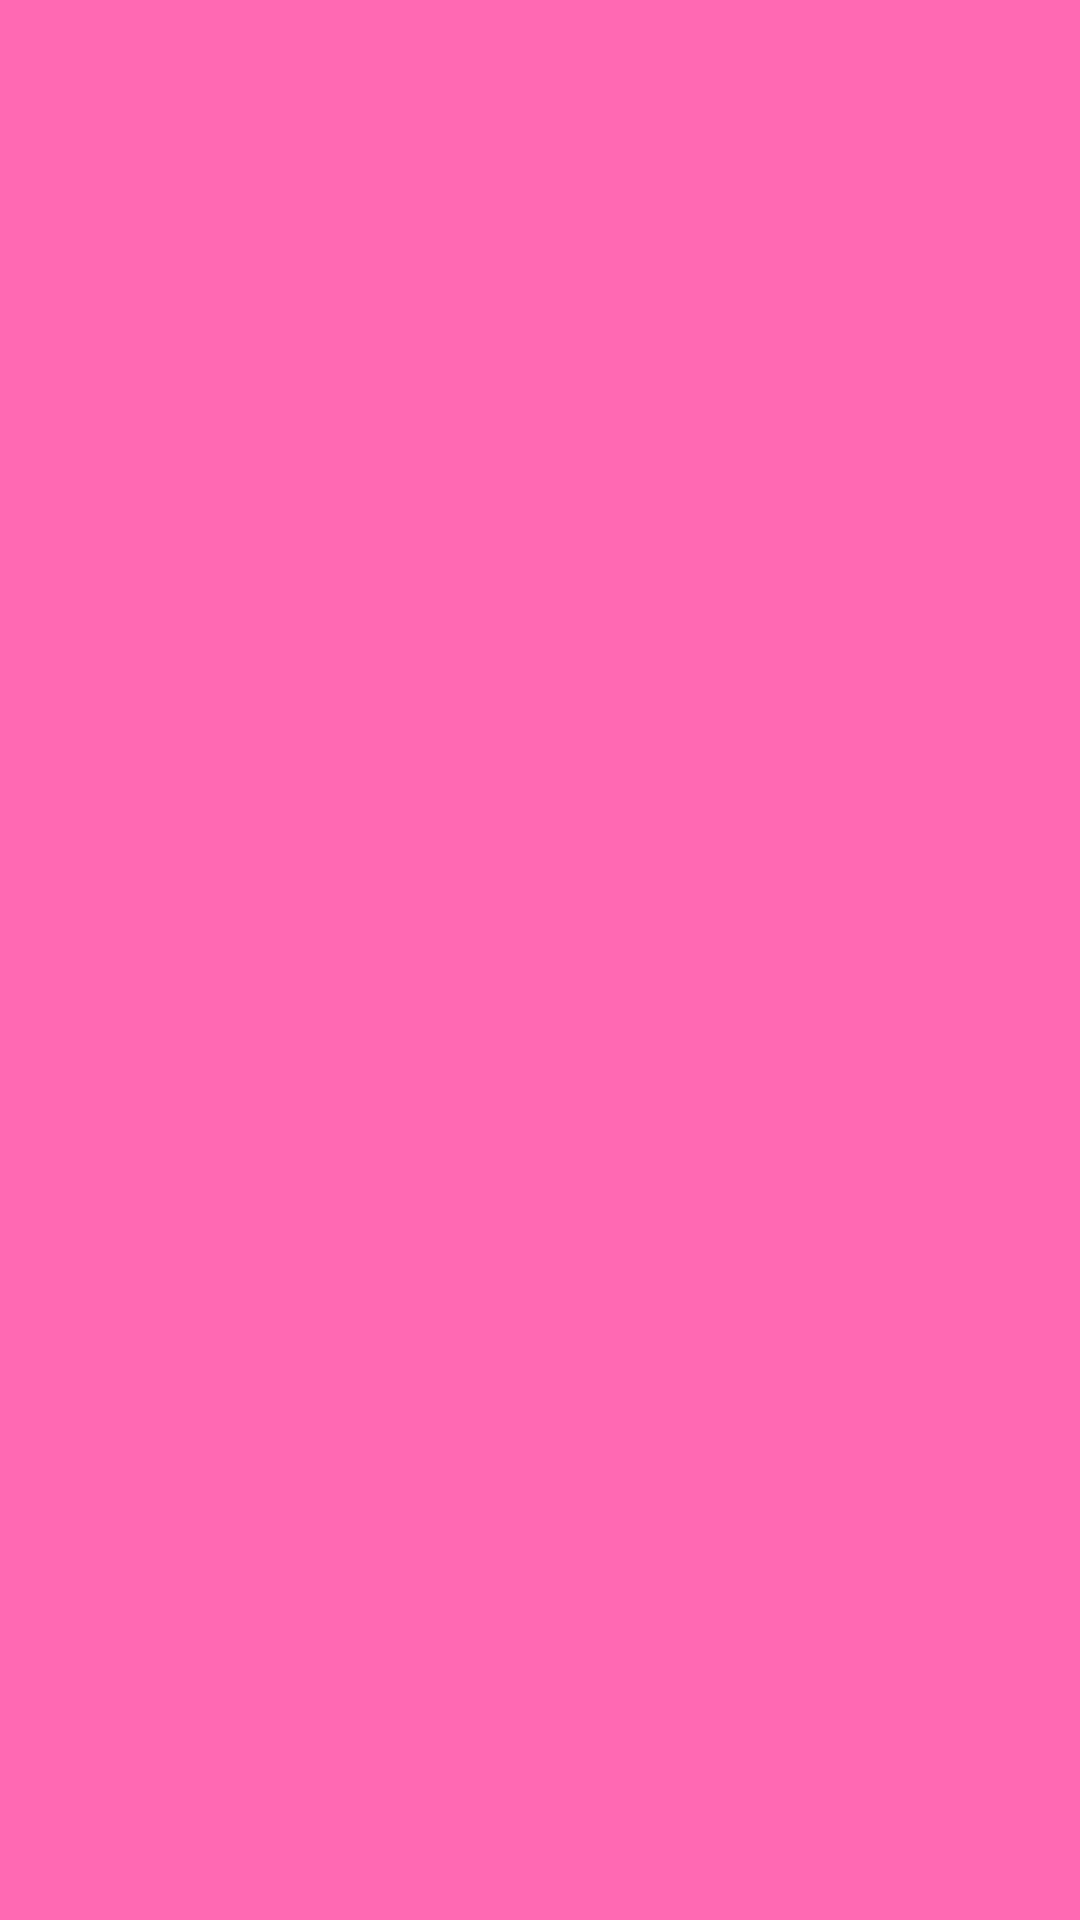 Solid Pink Wallpapers - Top Free Solid